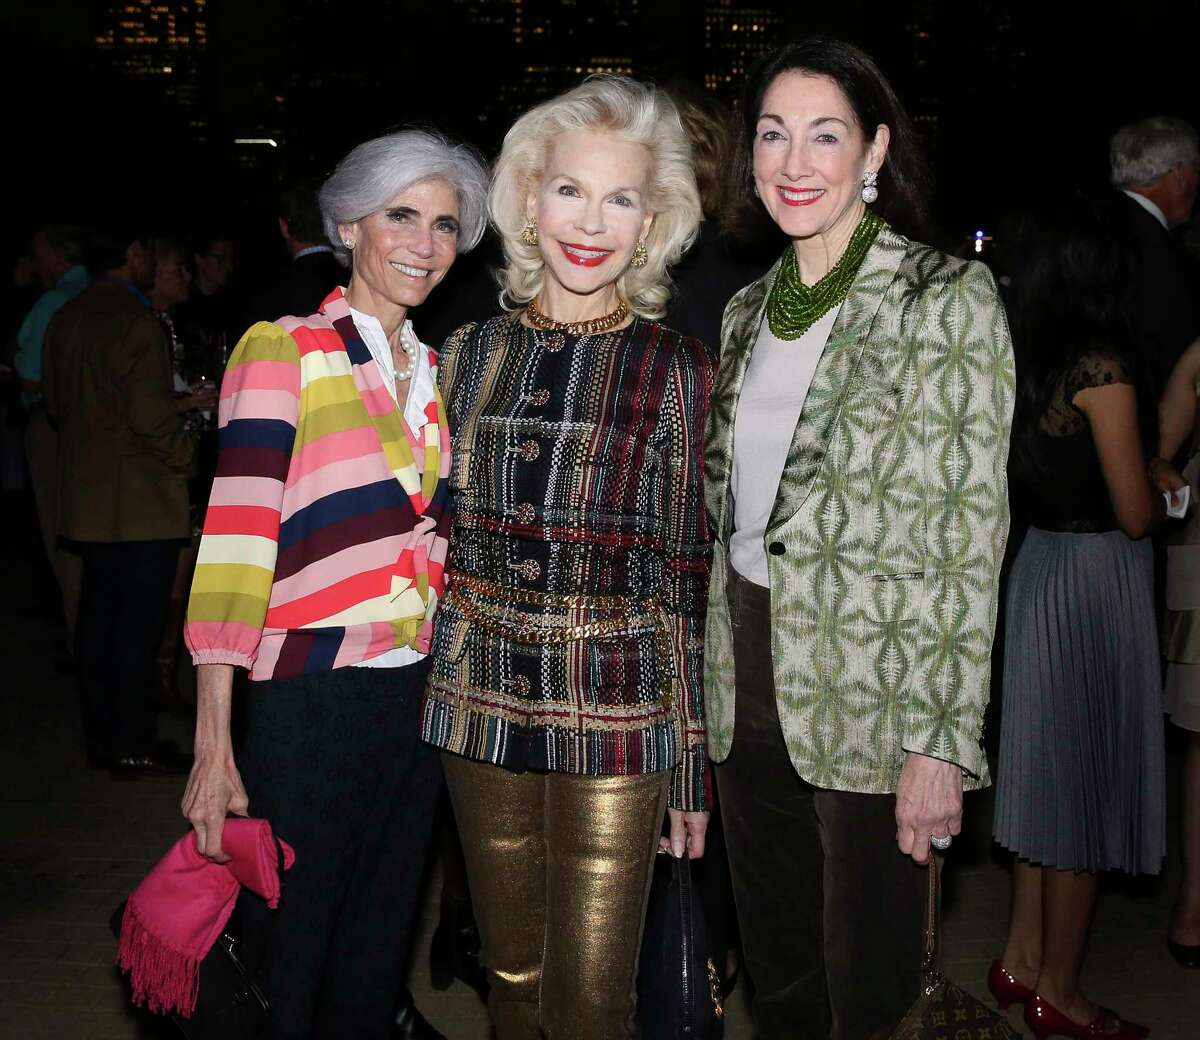 Honoree Judy Nyquist, from left, Lynn Wyatt and Suzie Criner pose for a photograph at the